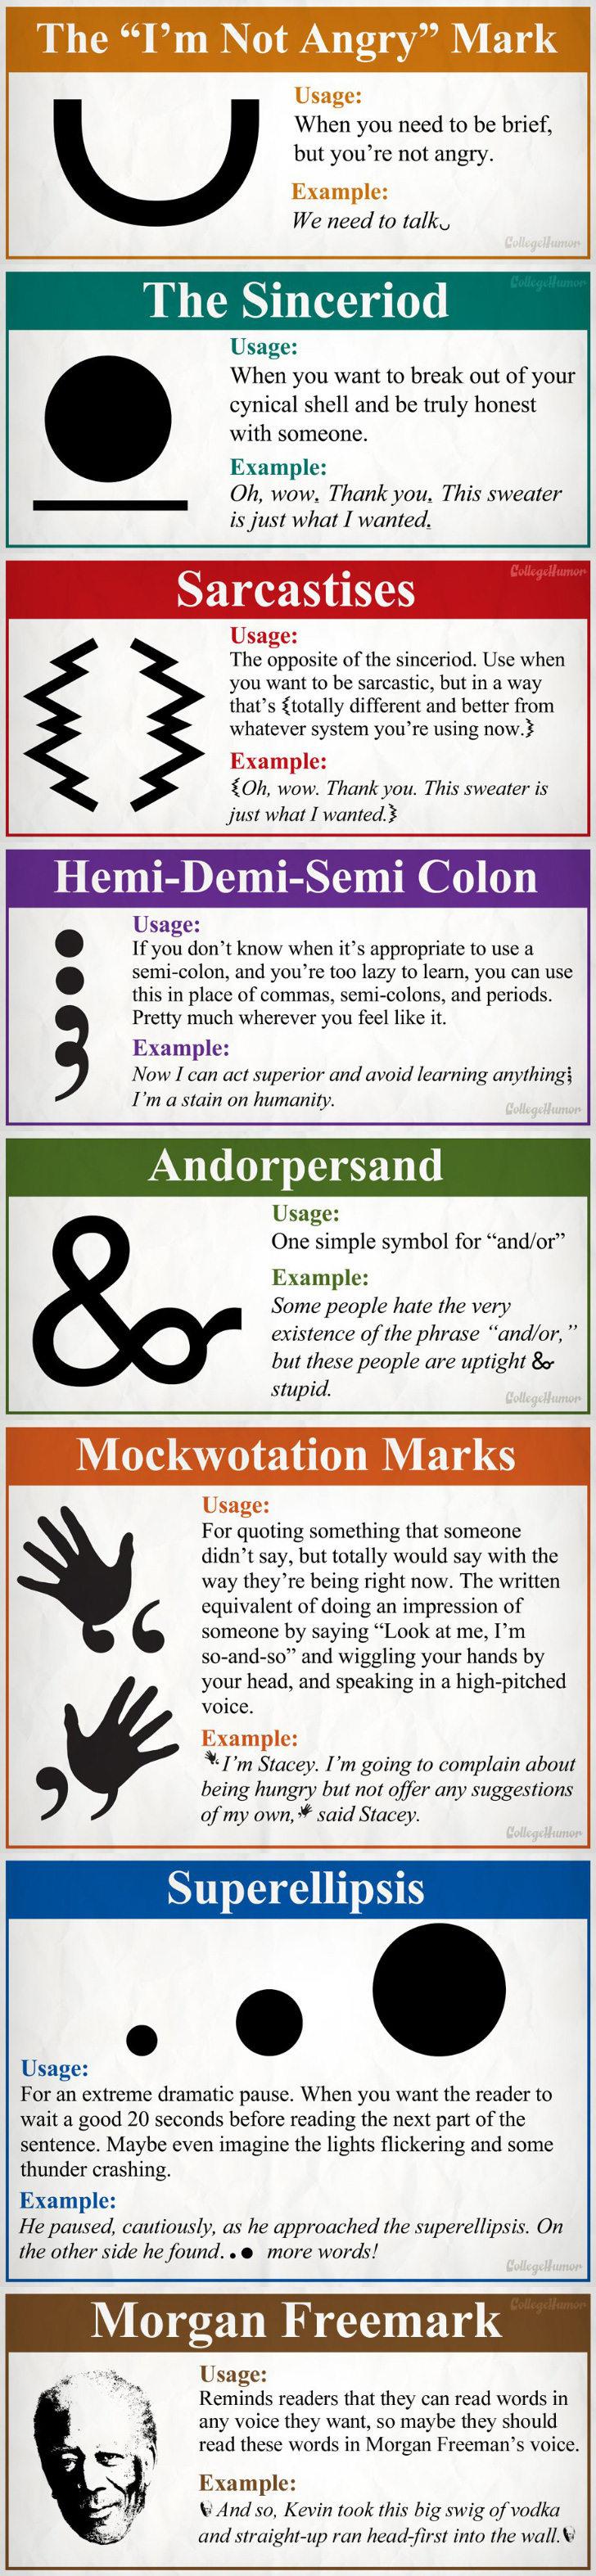 new punctuation marks